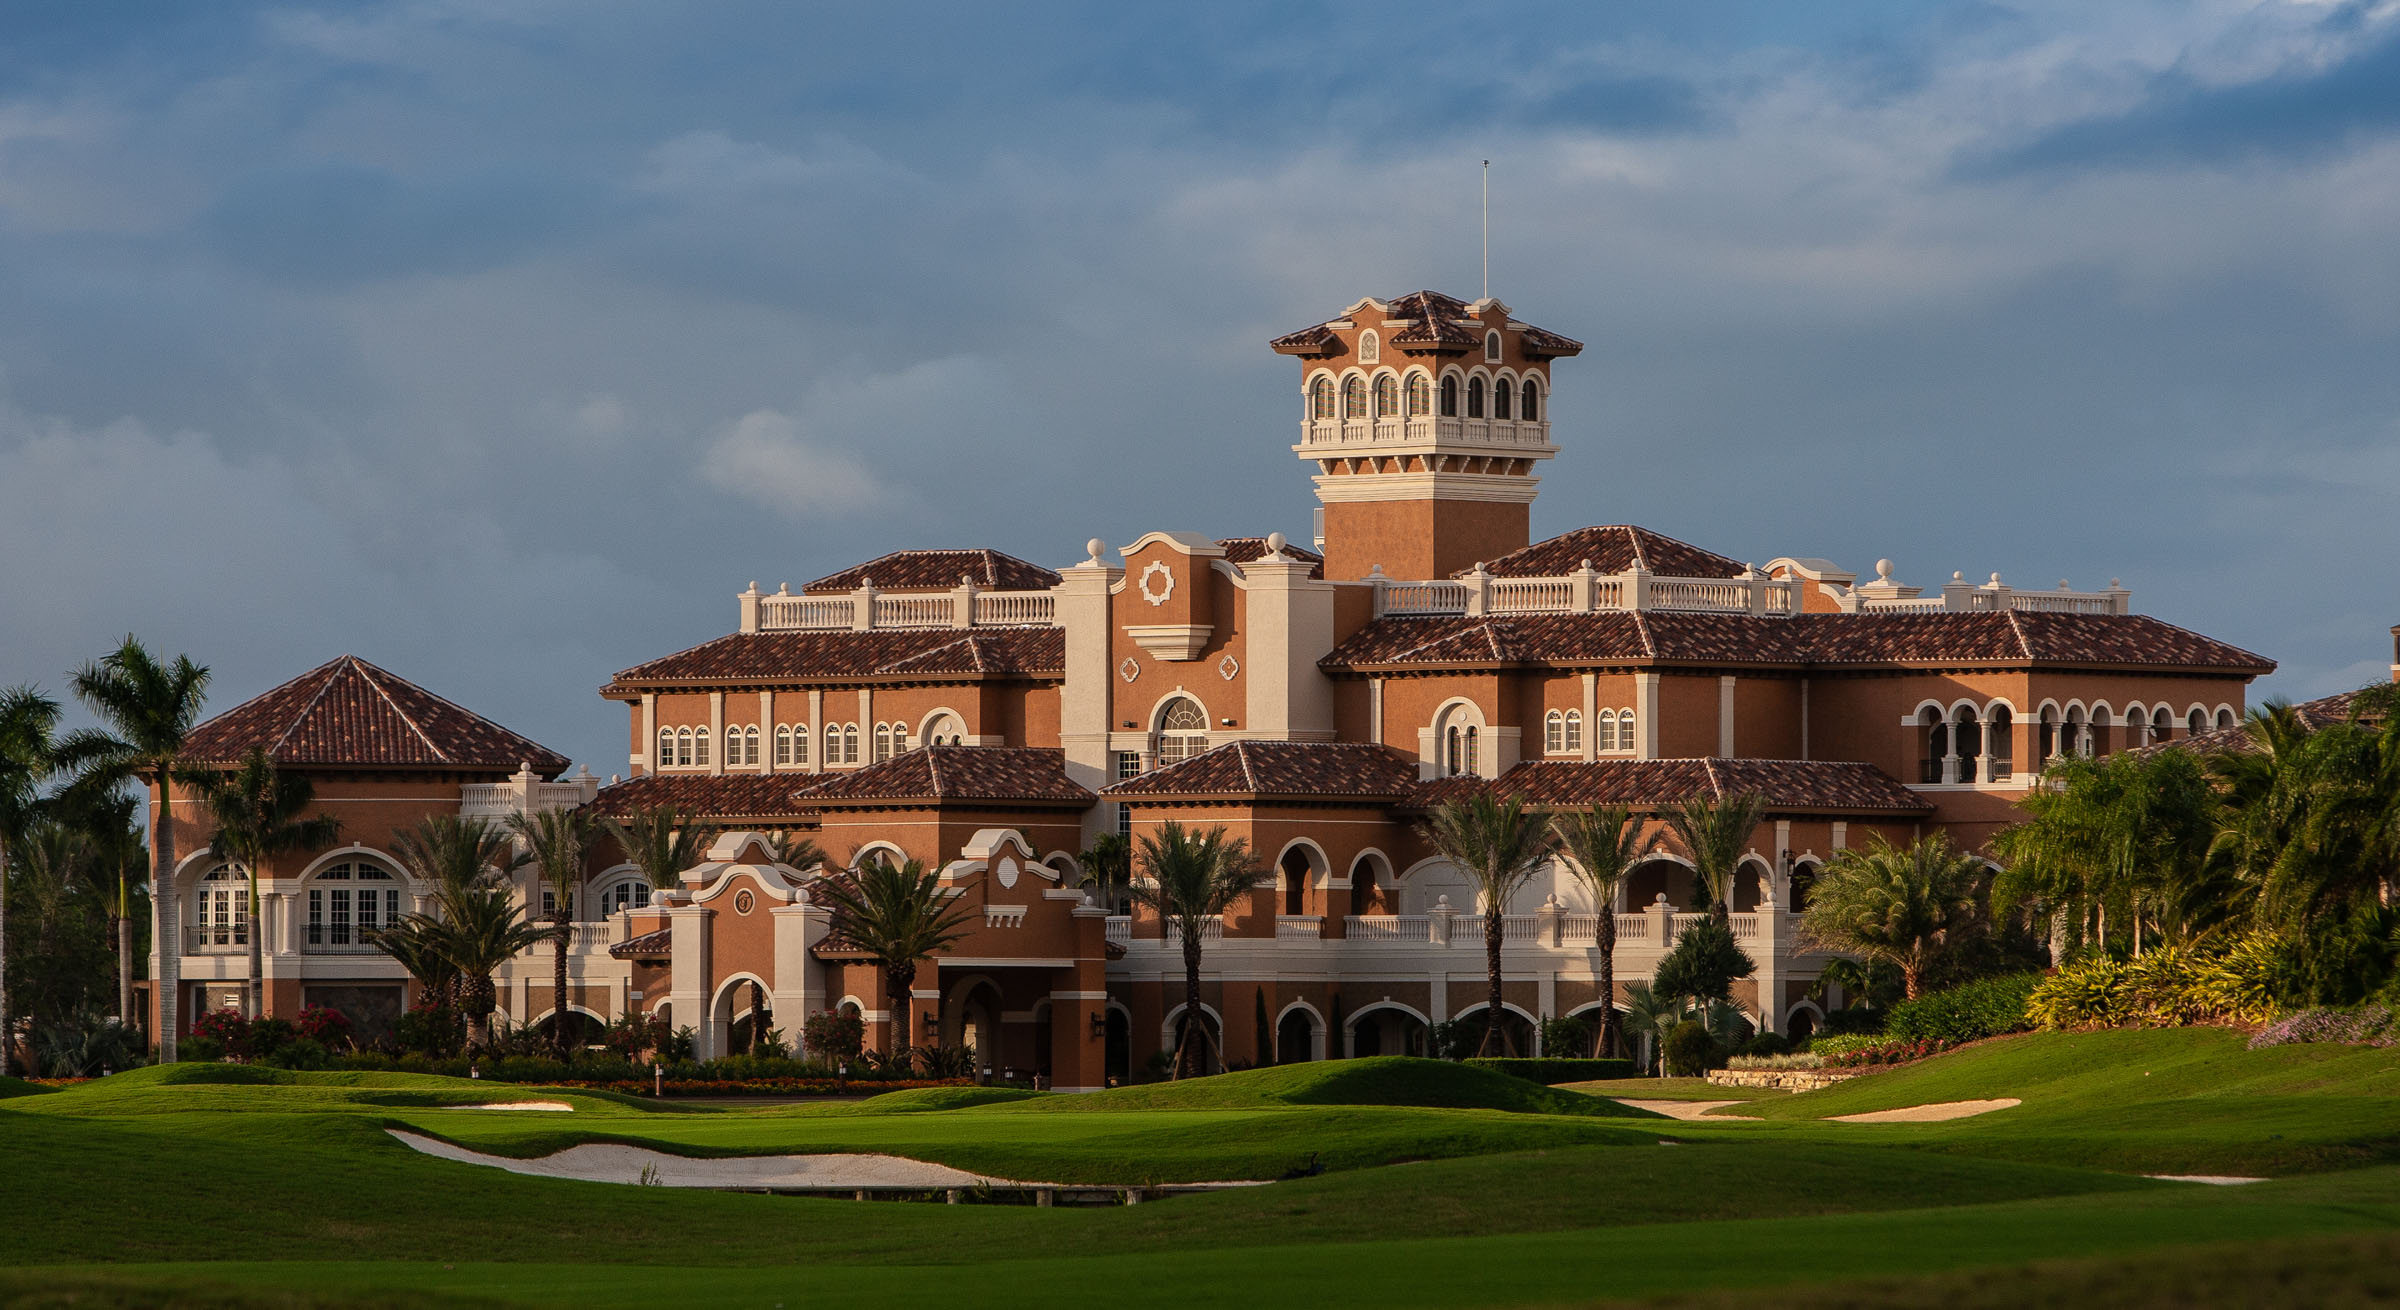 Clubhouse imagery  Steven Martine Florida advertising architecture photographer